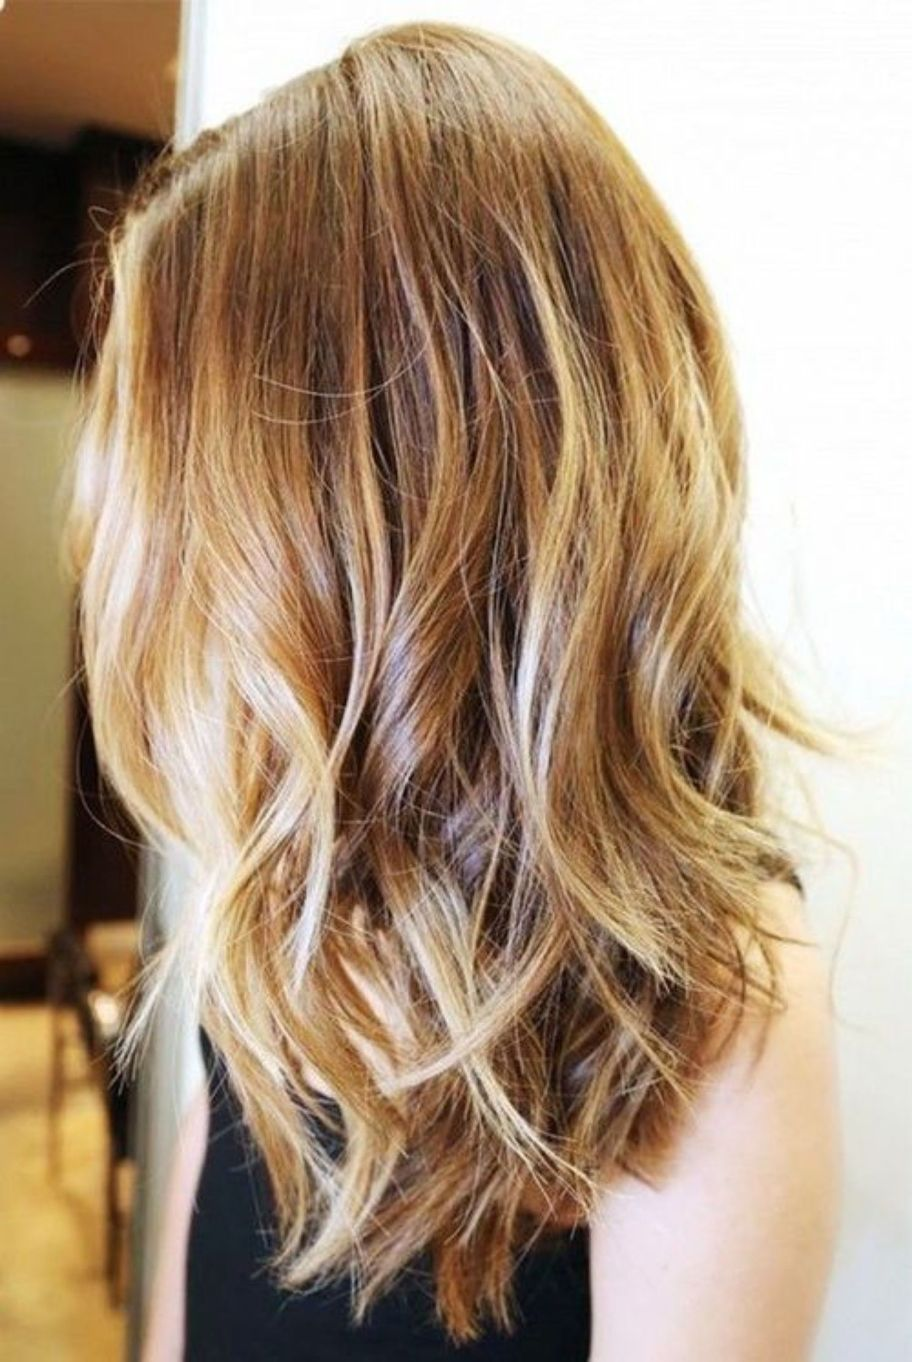 70 Devastatingly Cool Haircuts For Thin Hair In 2020 Thin Hair Haircuts Long Thin Hair Thin Hair Layers